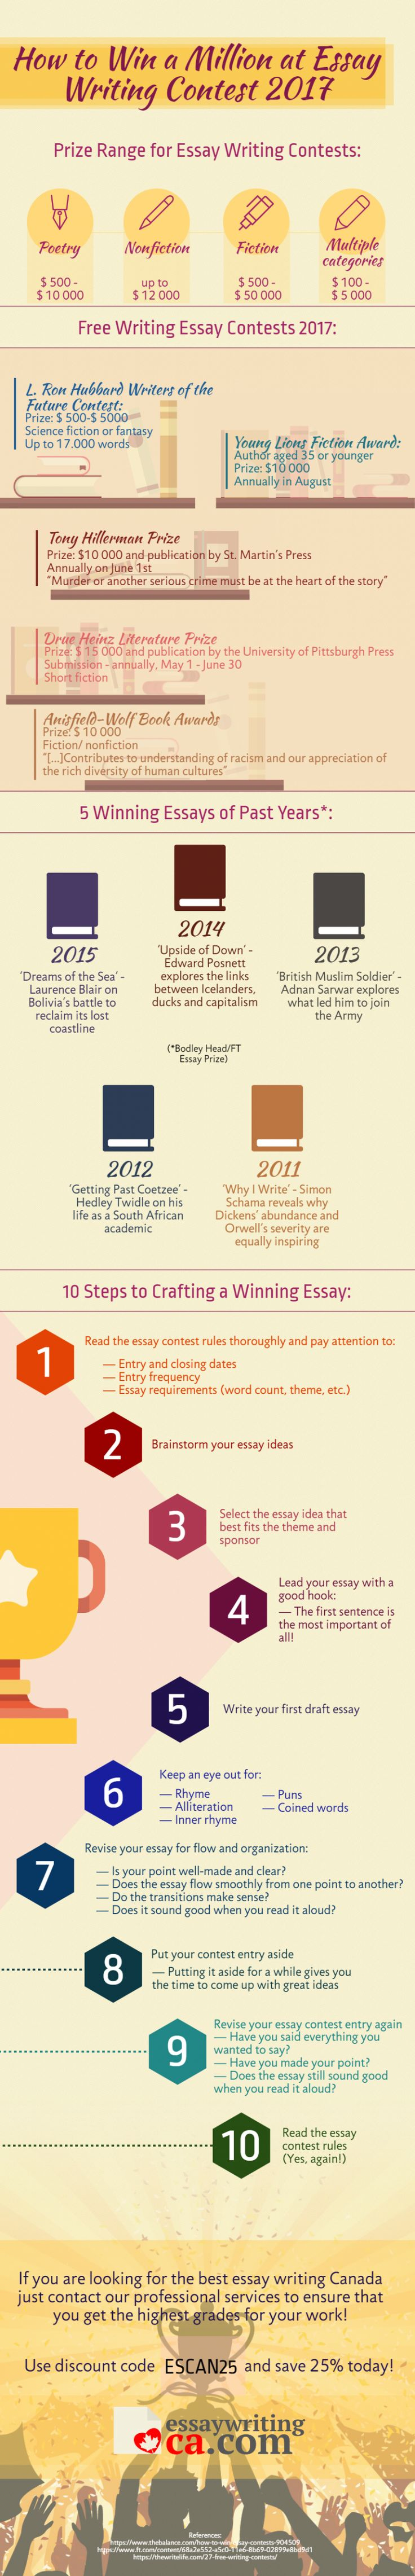 These amazing tips will show you how to win essay competition so make sure to check them out and find out http://www.essaywritingca.com/how-to-win-a-million-at-essay-writing-contest-2017/